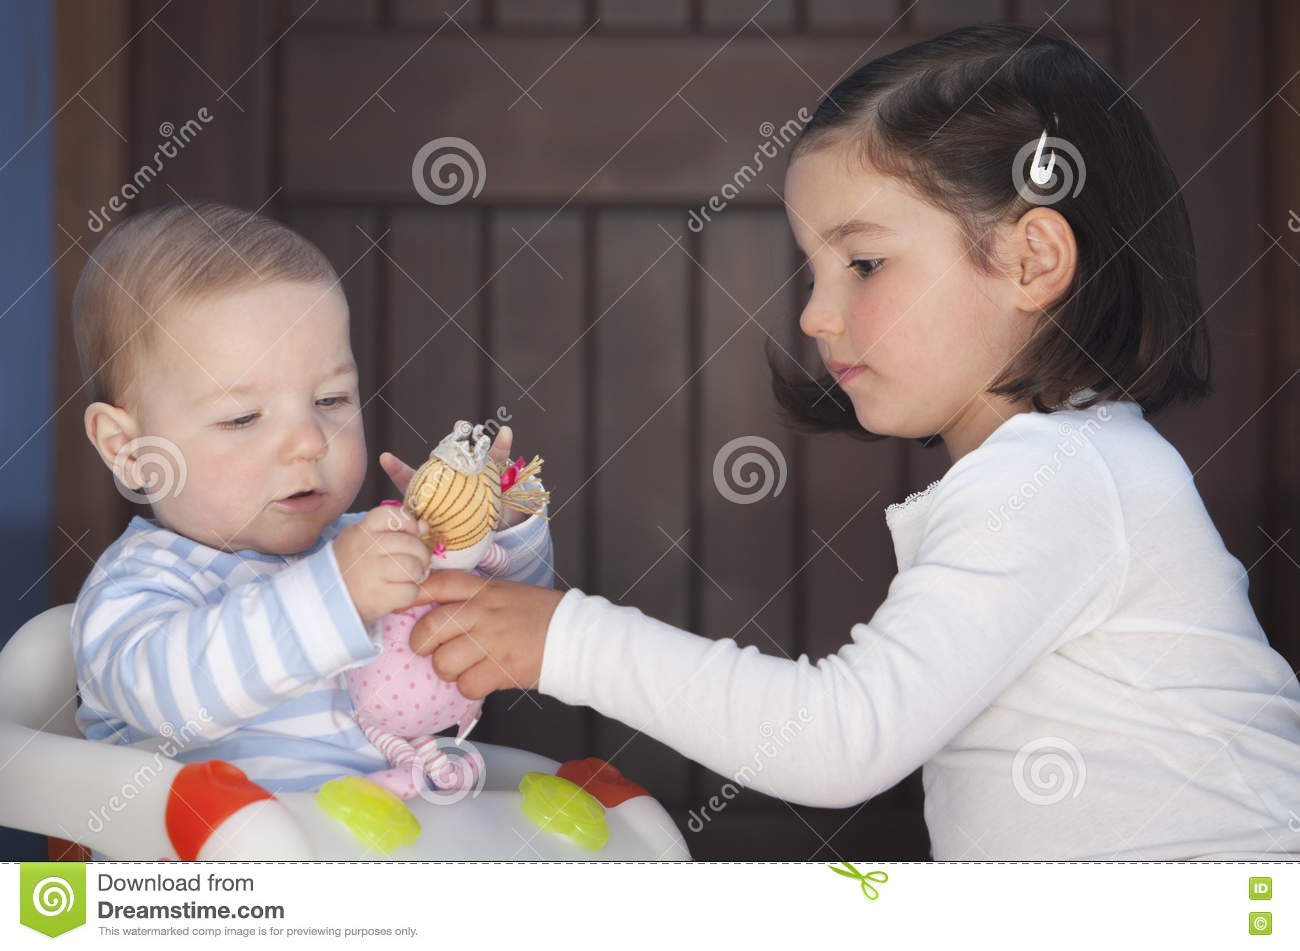 brother and sister playing with dolls. sex stereotyping overcome